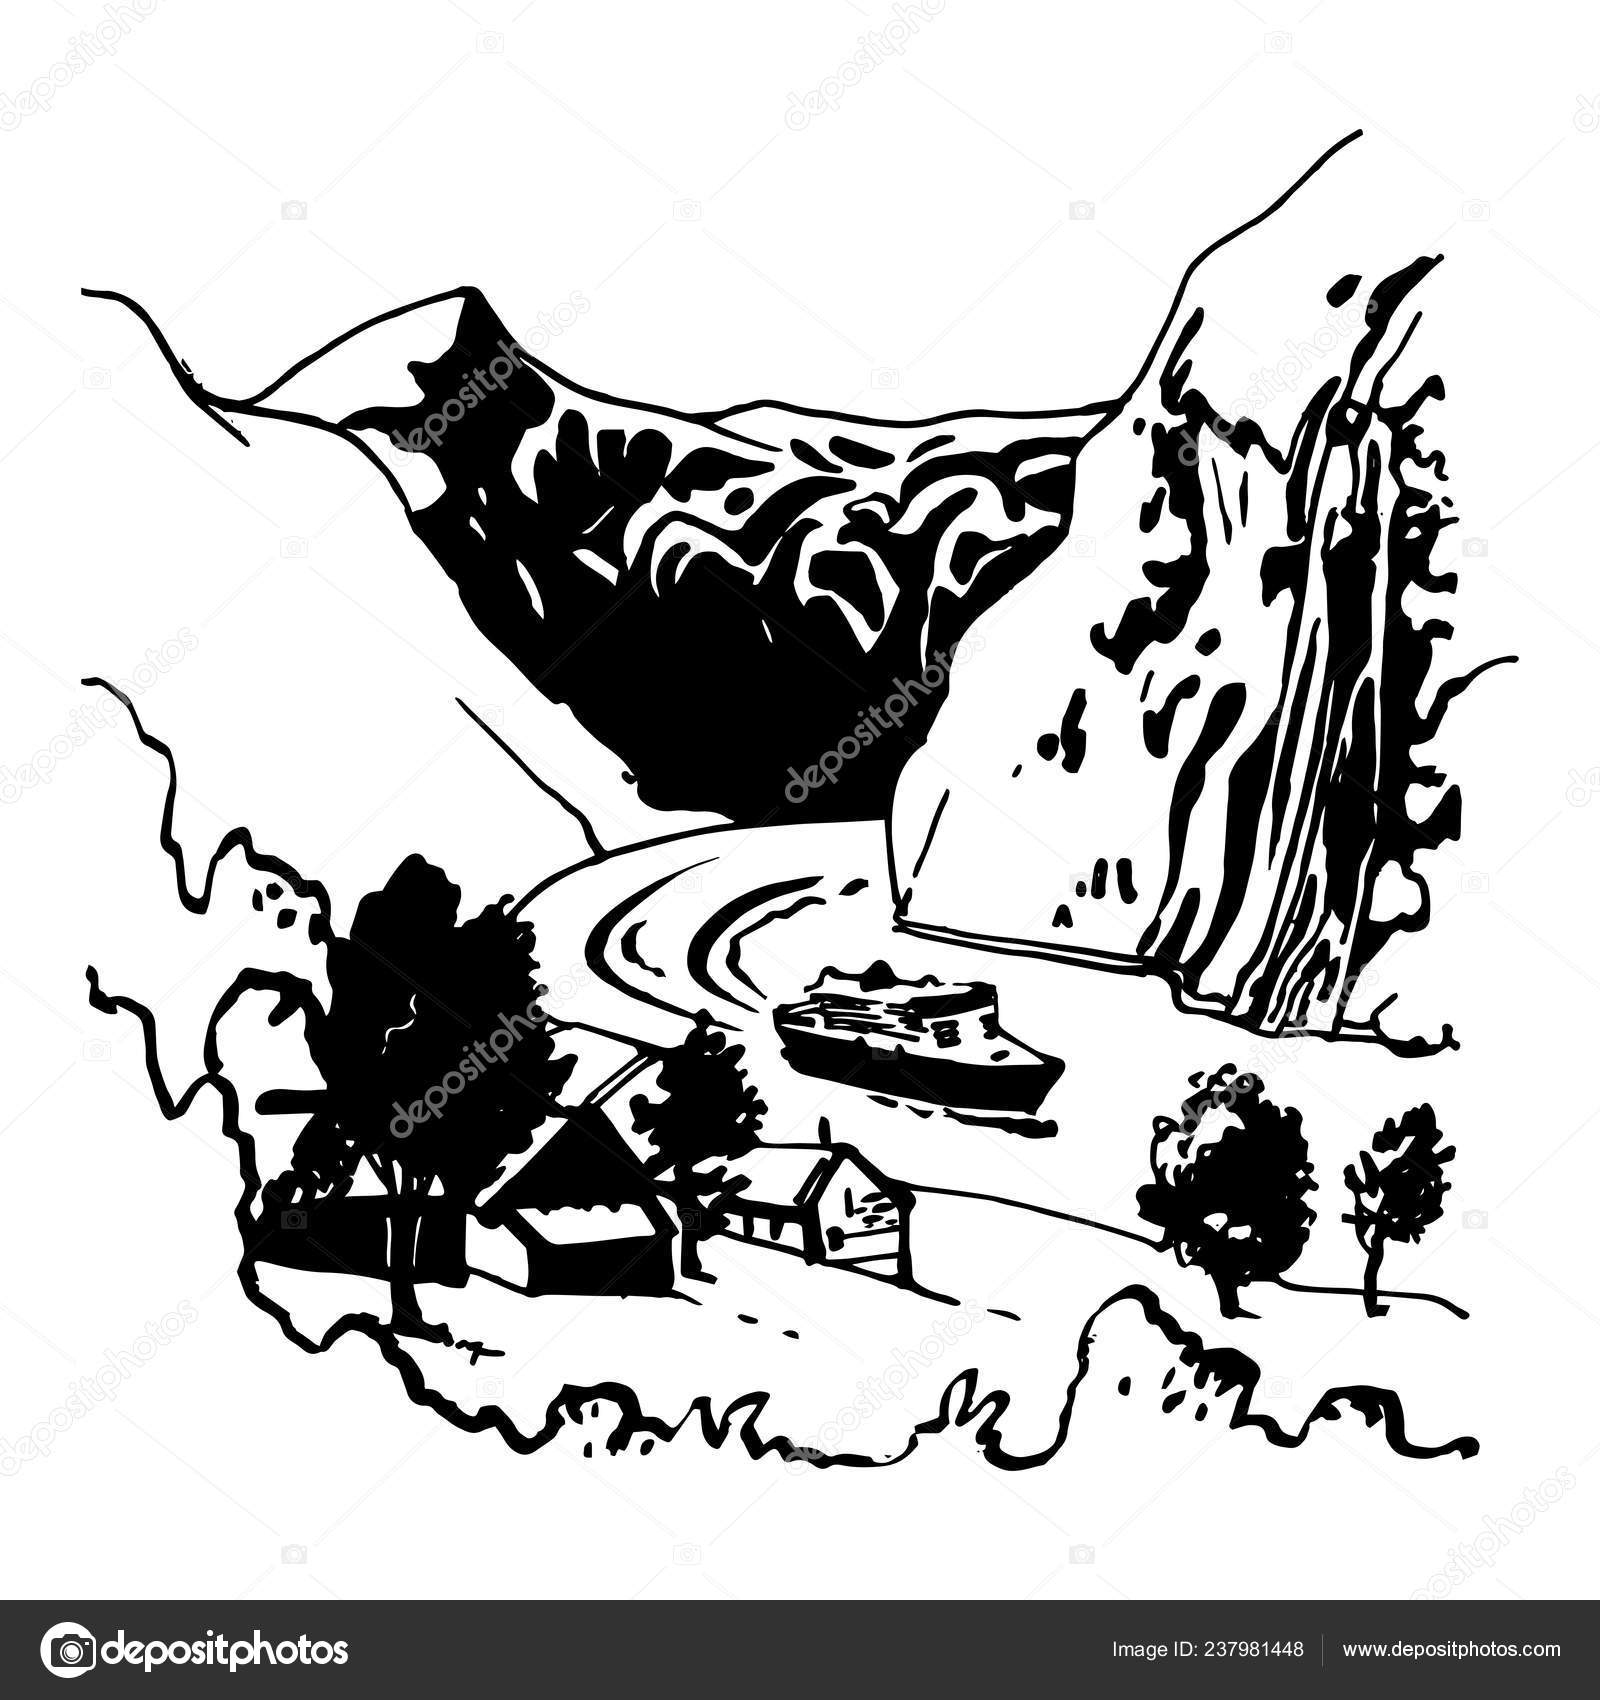 vector black white rocks motor ship river beautiful landscape stock vector c irinagorbunovaart 237981448 https depositphotos com 237981448 stock illustration vector black white rocks motor html